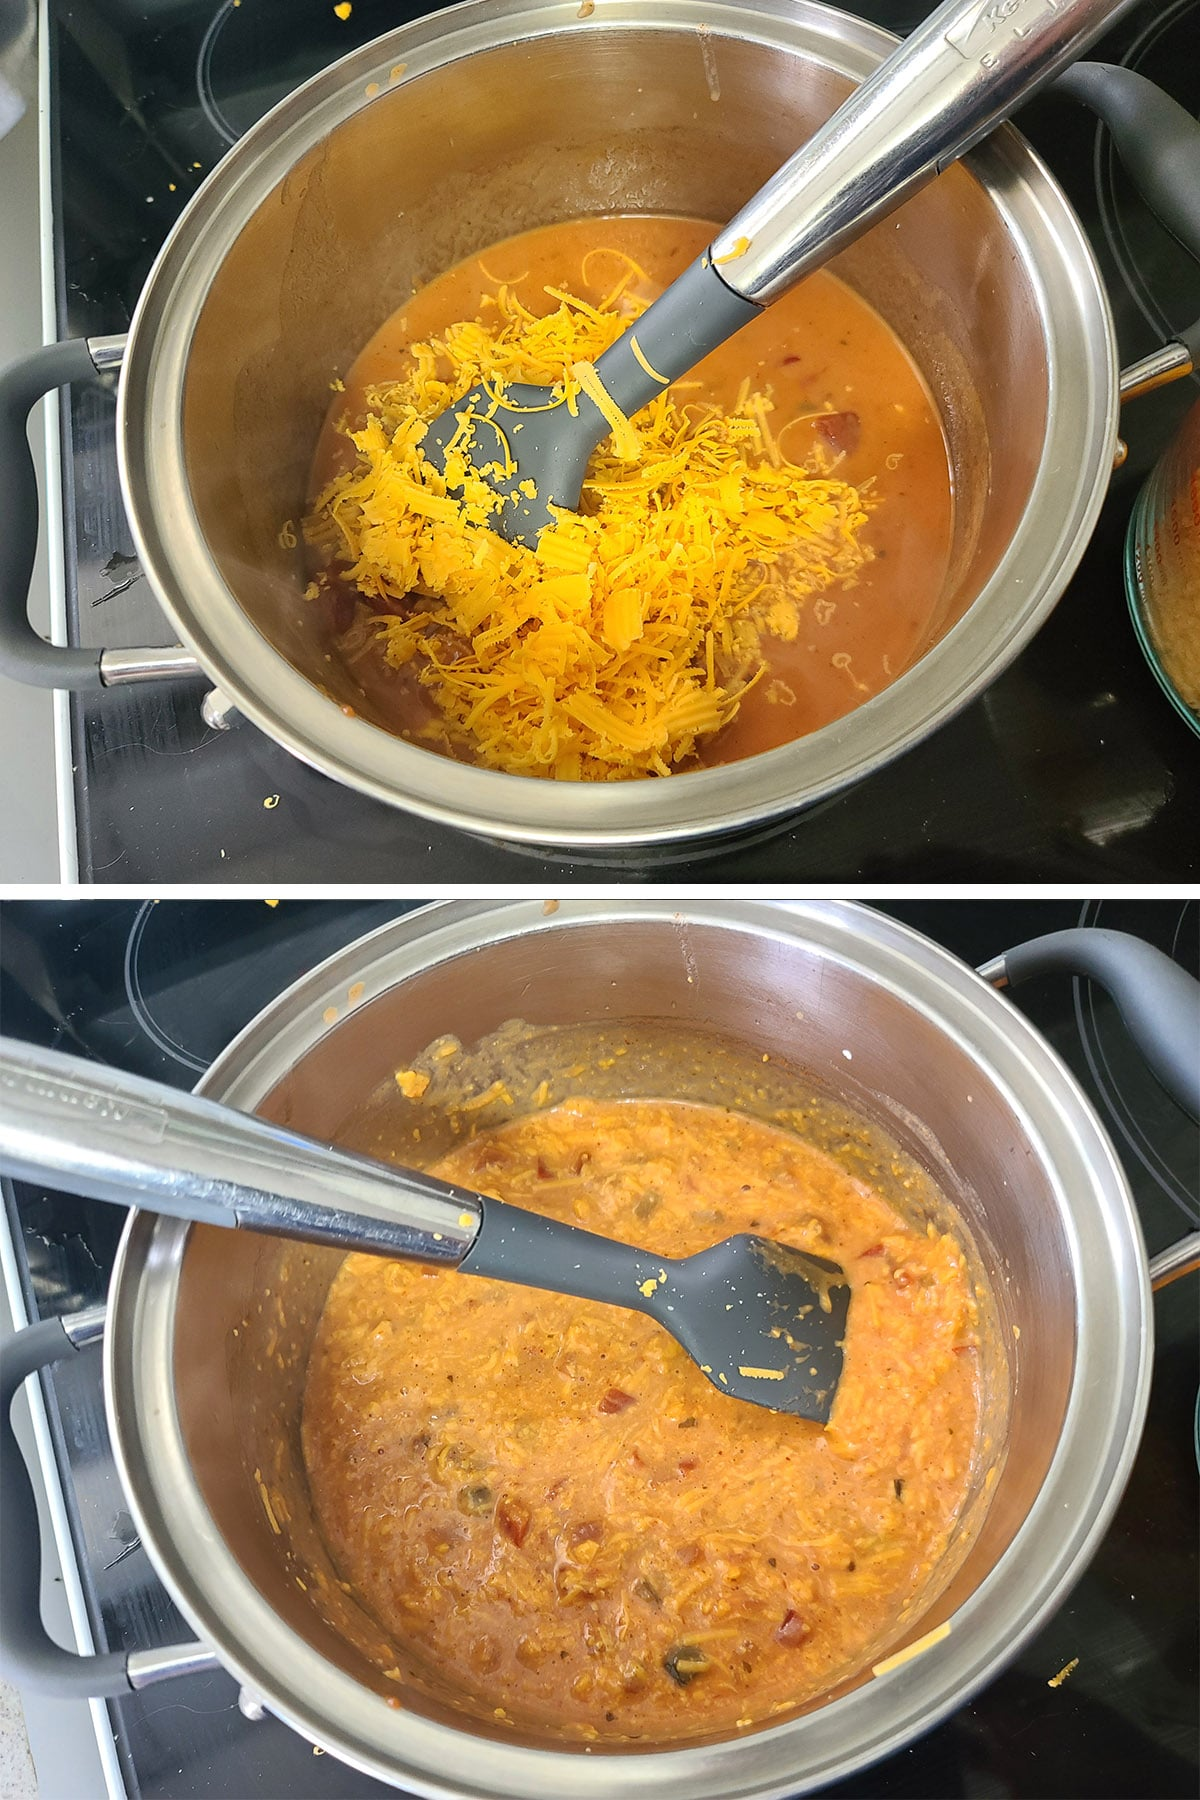 Cheese is added to the beer and salsa and stirred in.